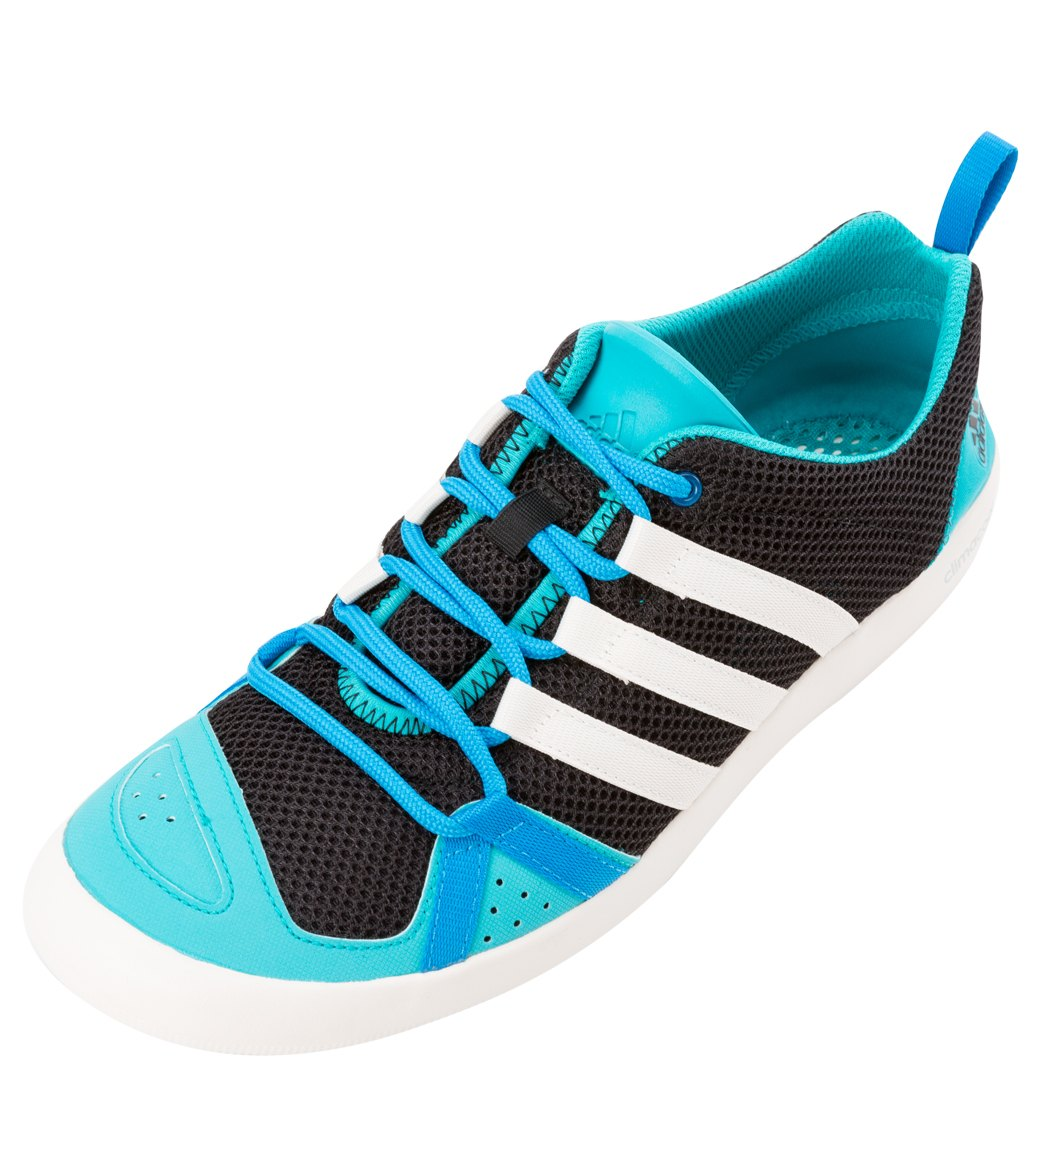 At Men's Boat Adidas Climacool Shoes Lace Water shdtQr